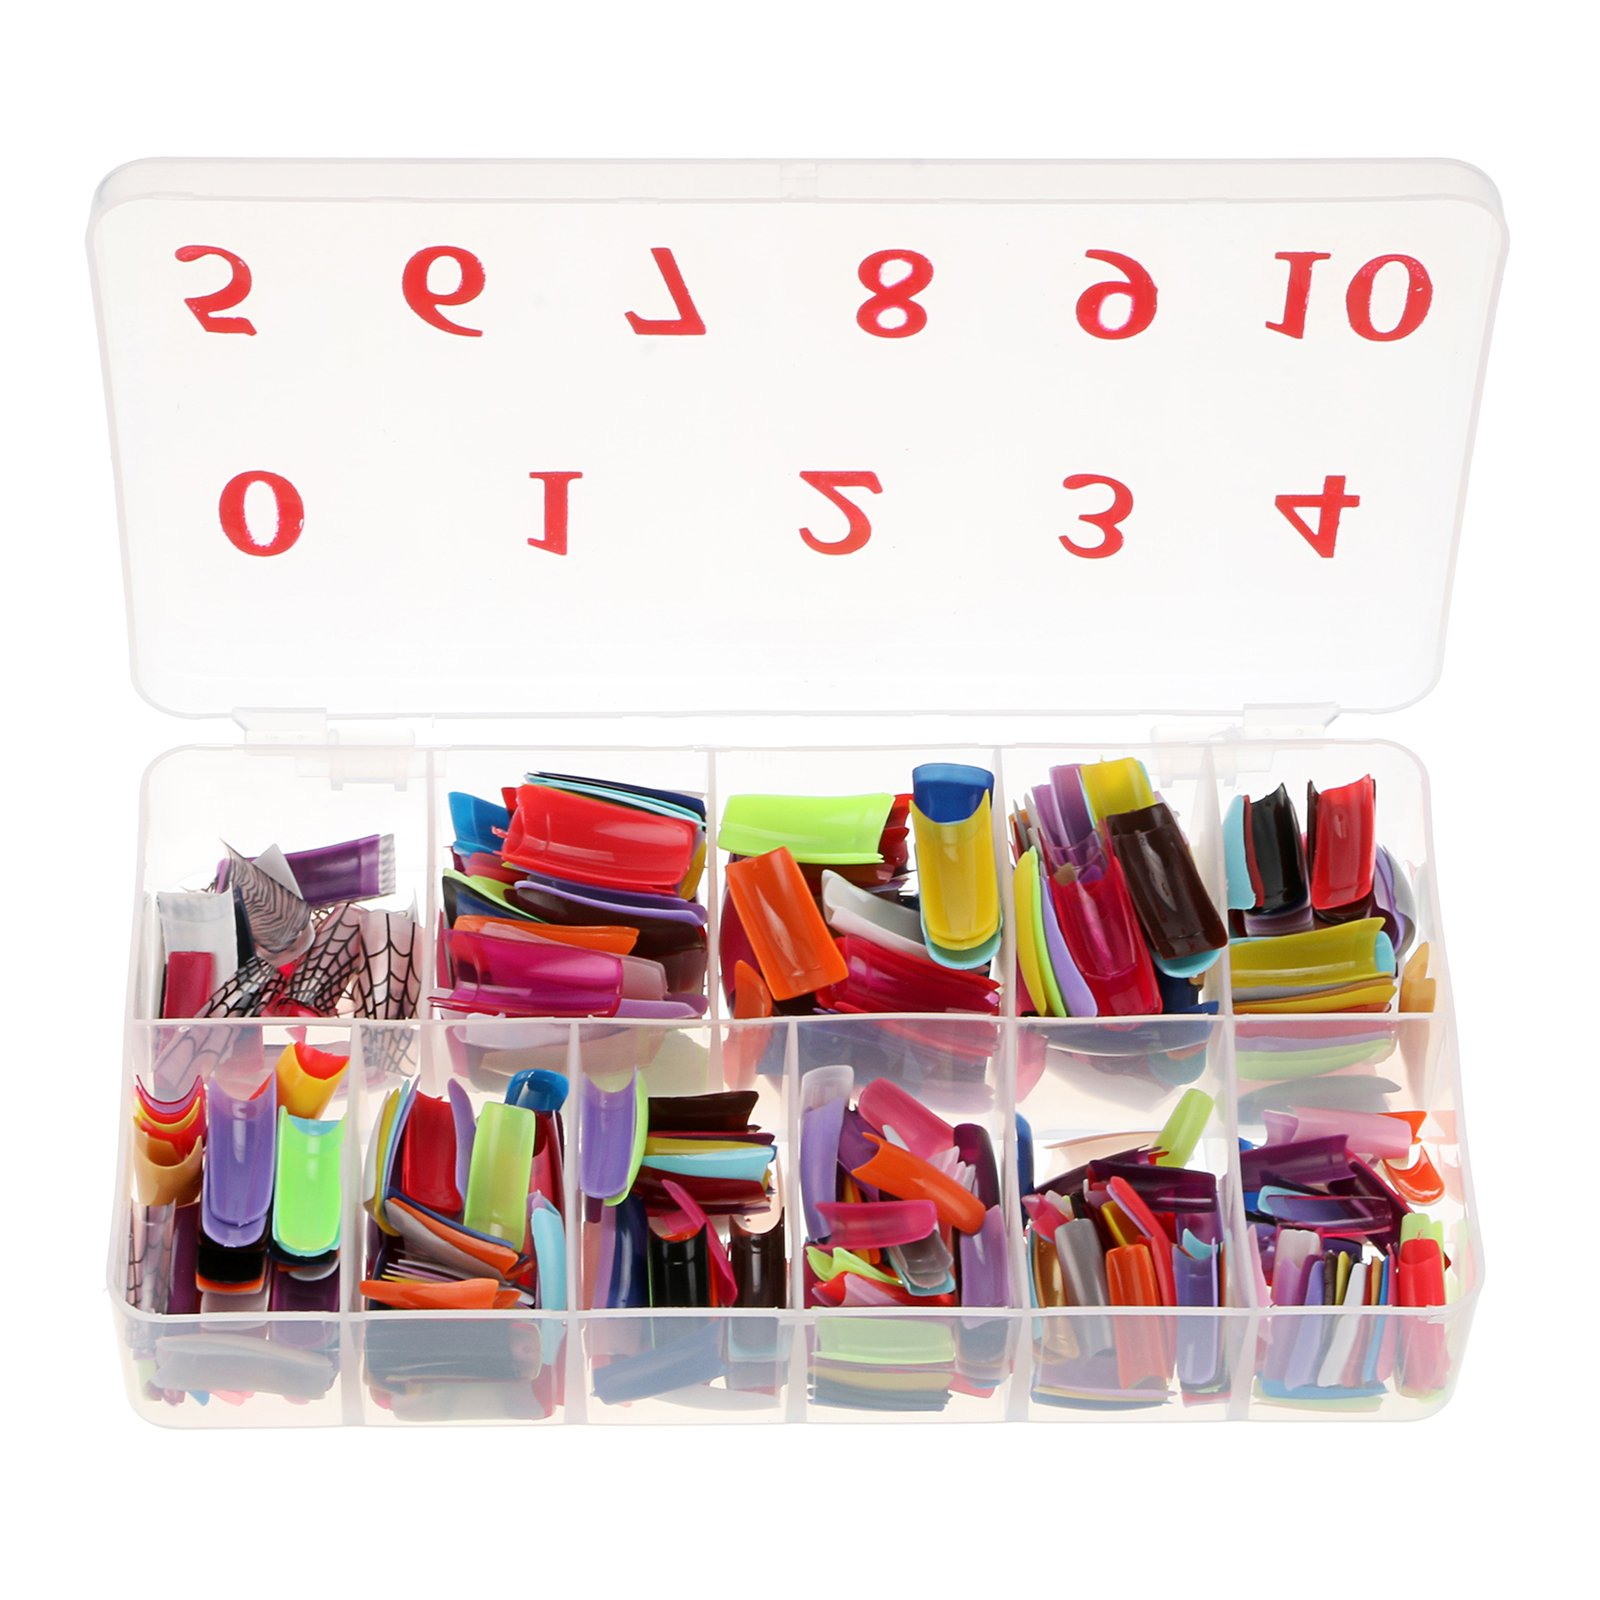 Baisidai 540 Pcs 27 Color French False Acrylic Gel Nail Art Tips Half with Box Salon Set by BAISIDAI